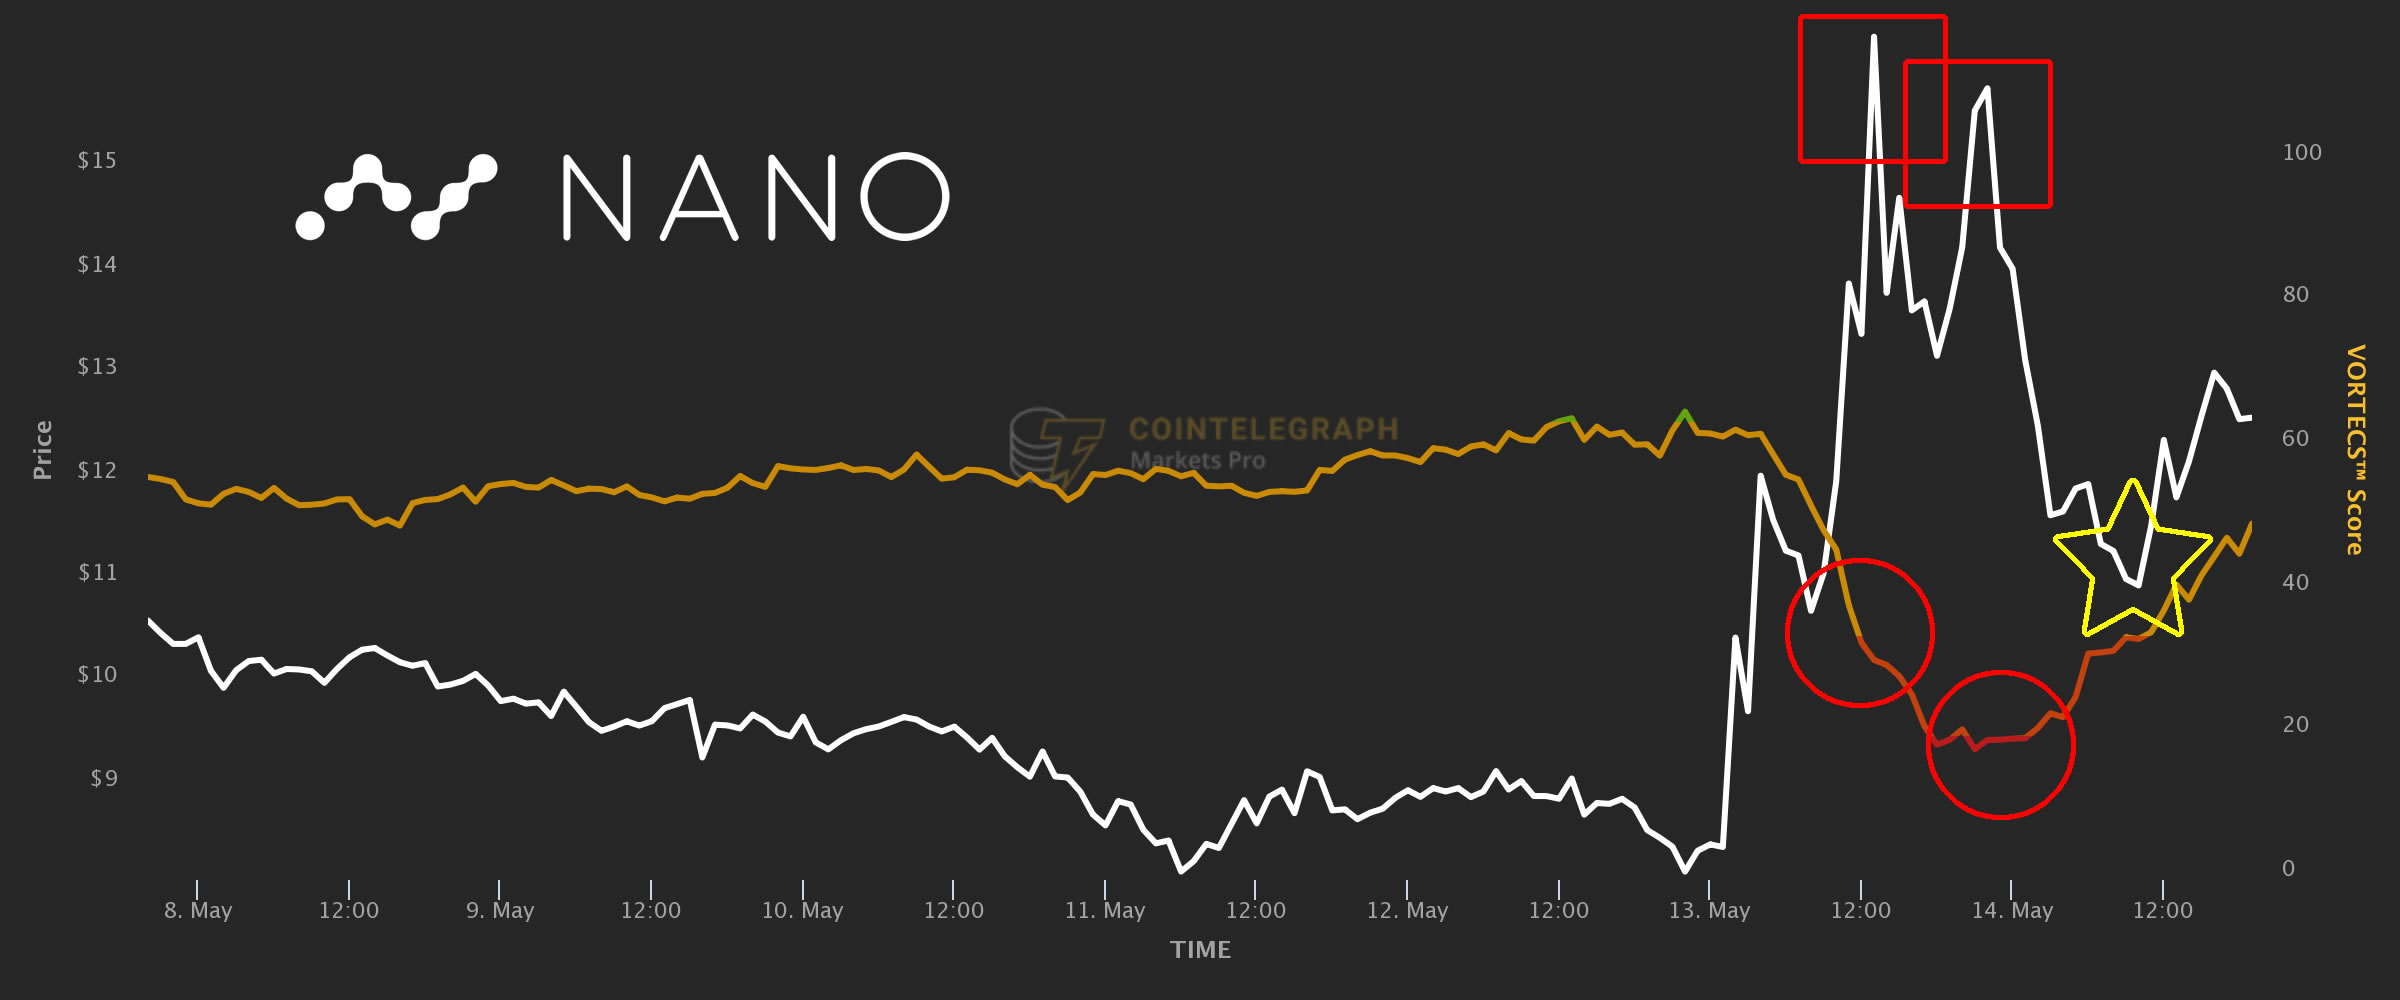 NANO value spike offers merchants an opportunity to wager in opposition to the rally